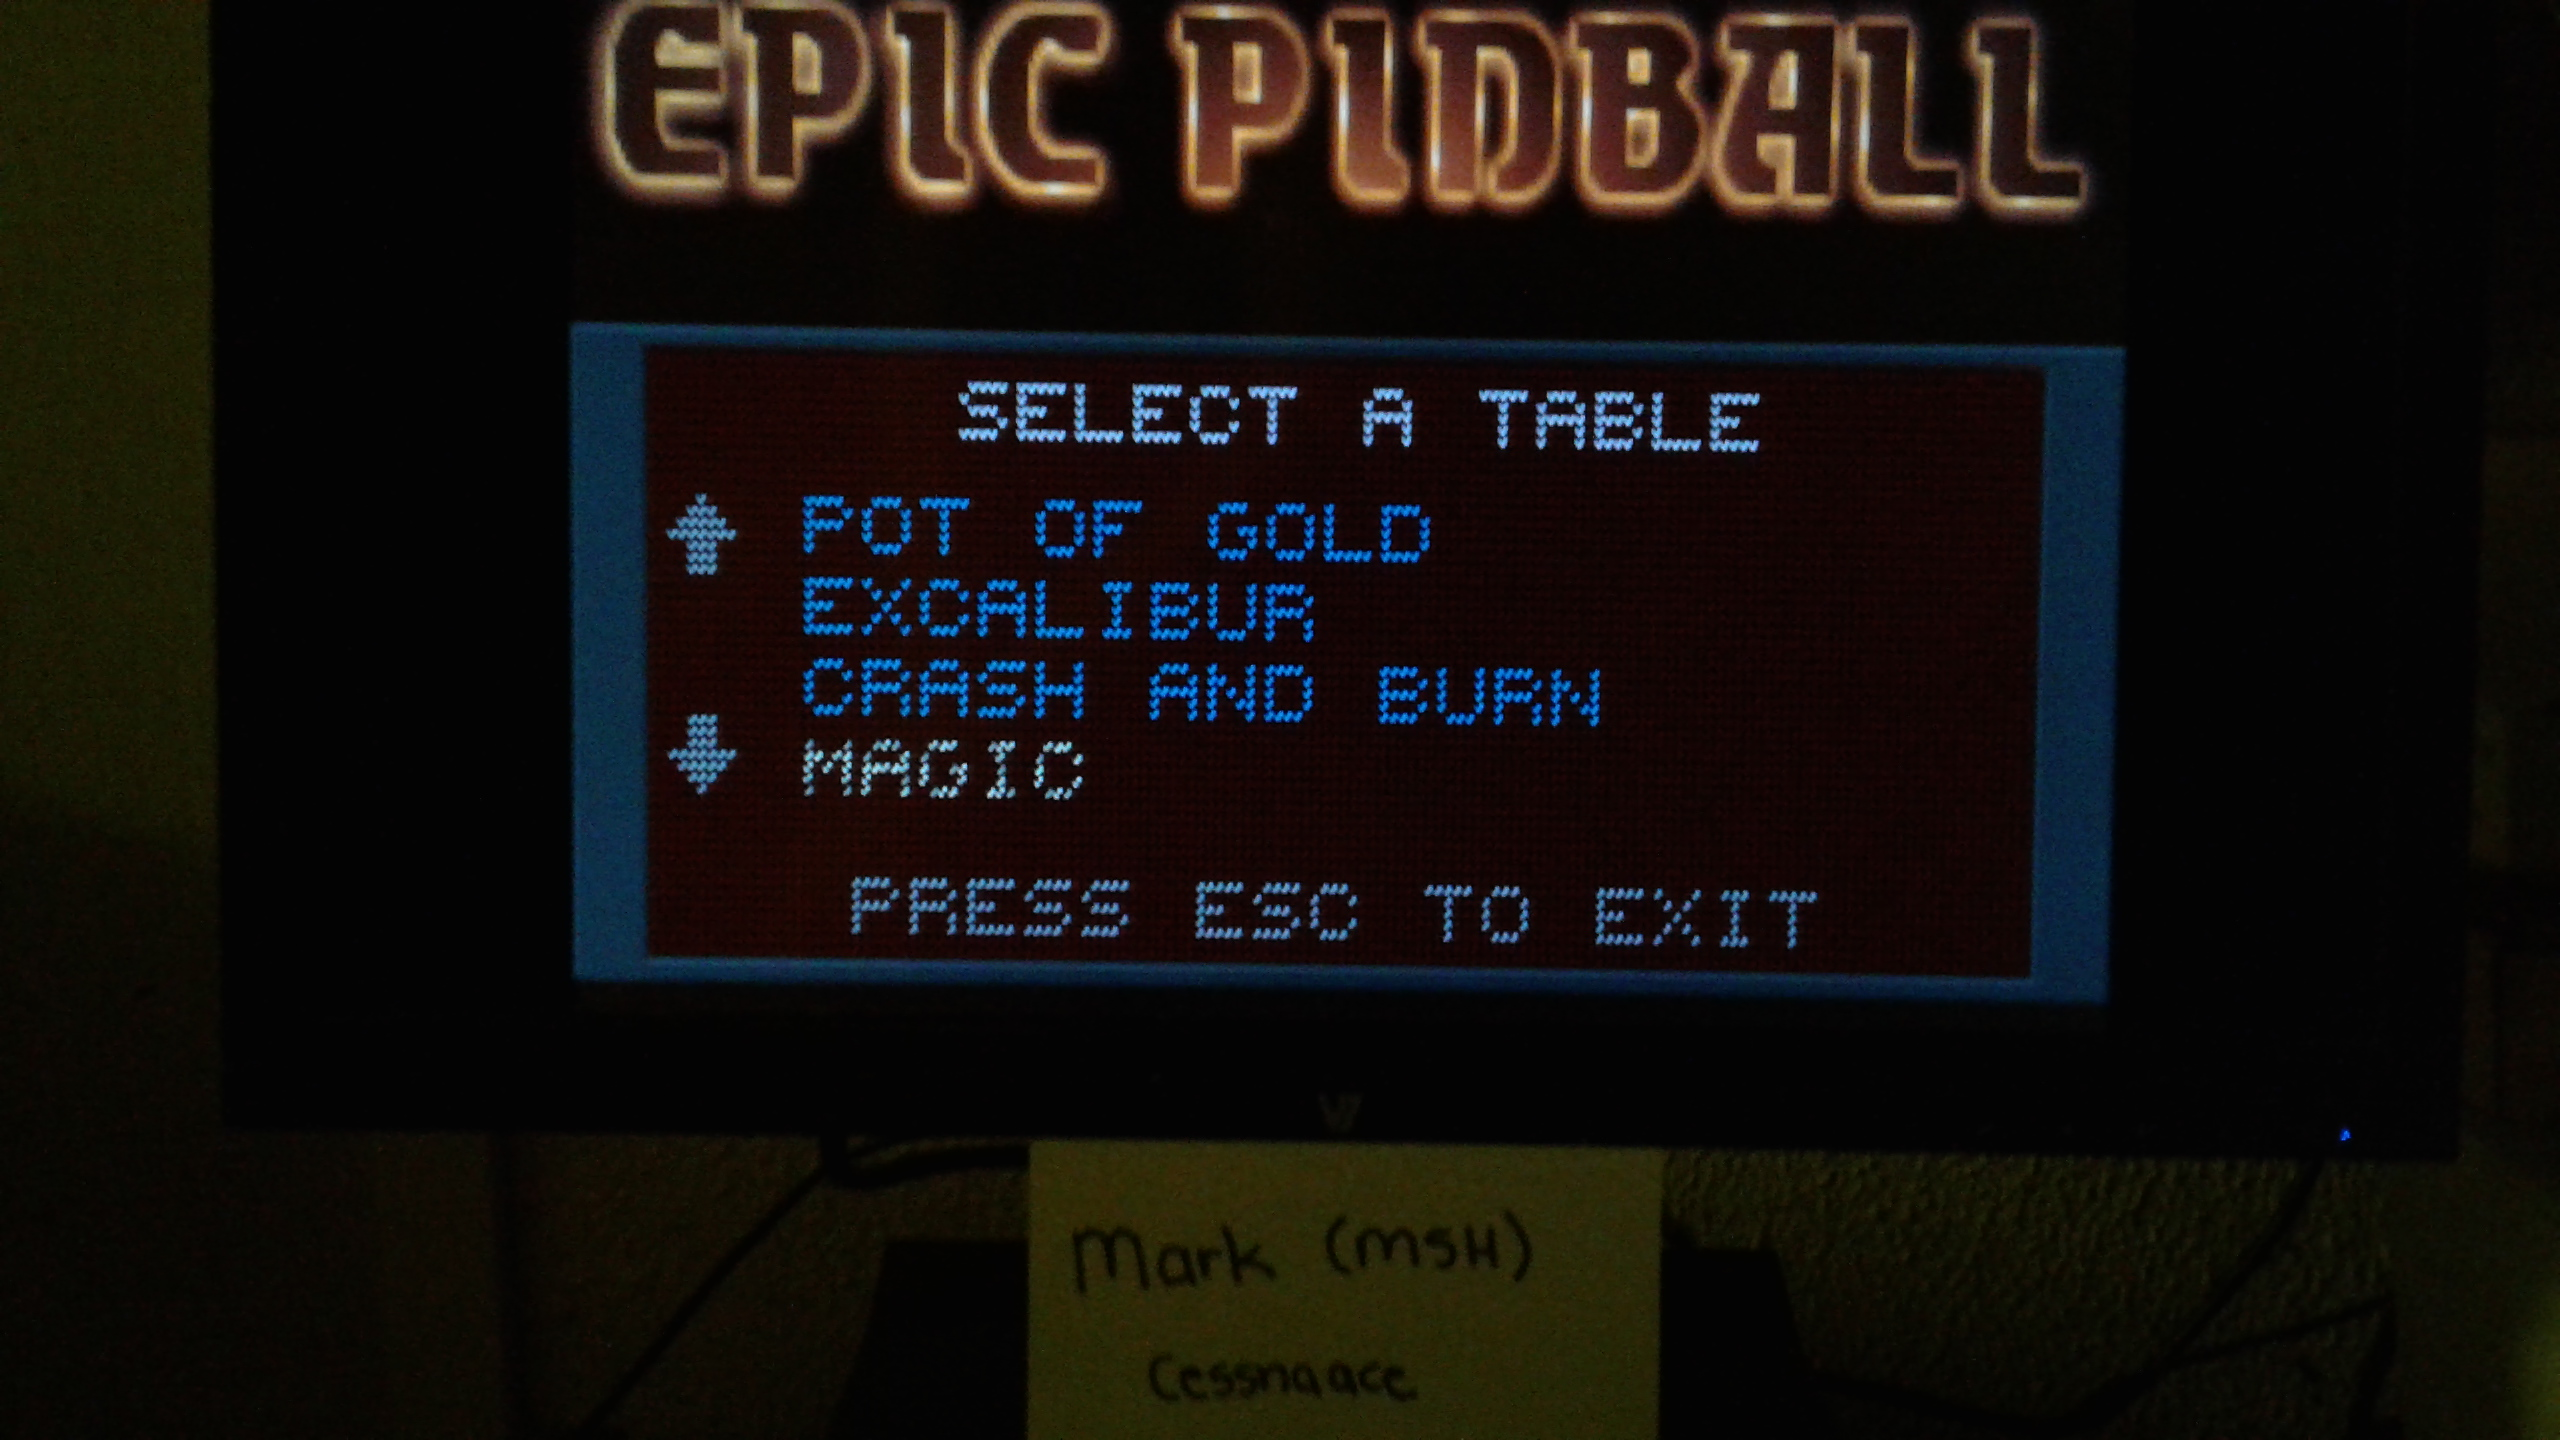 Mark: Epic Pinball: Magic (PC Emulated / DOSBox) 15,450 points on 2019-05-13 01:49:15